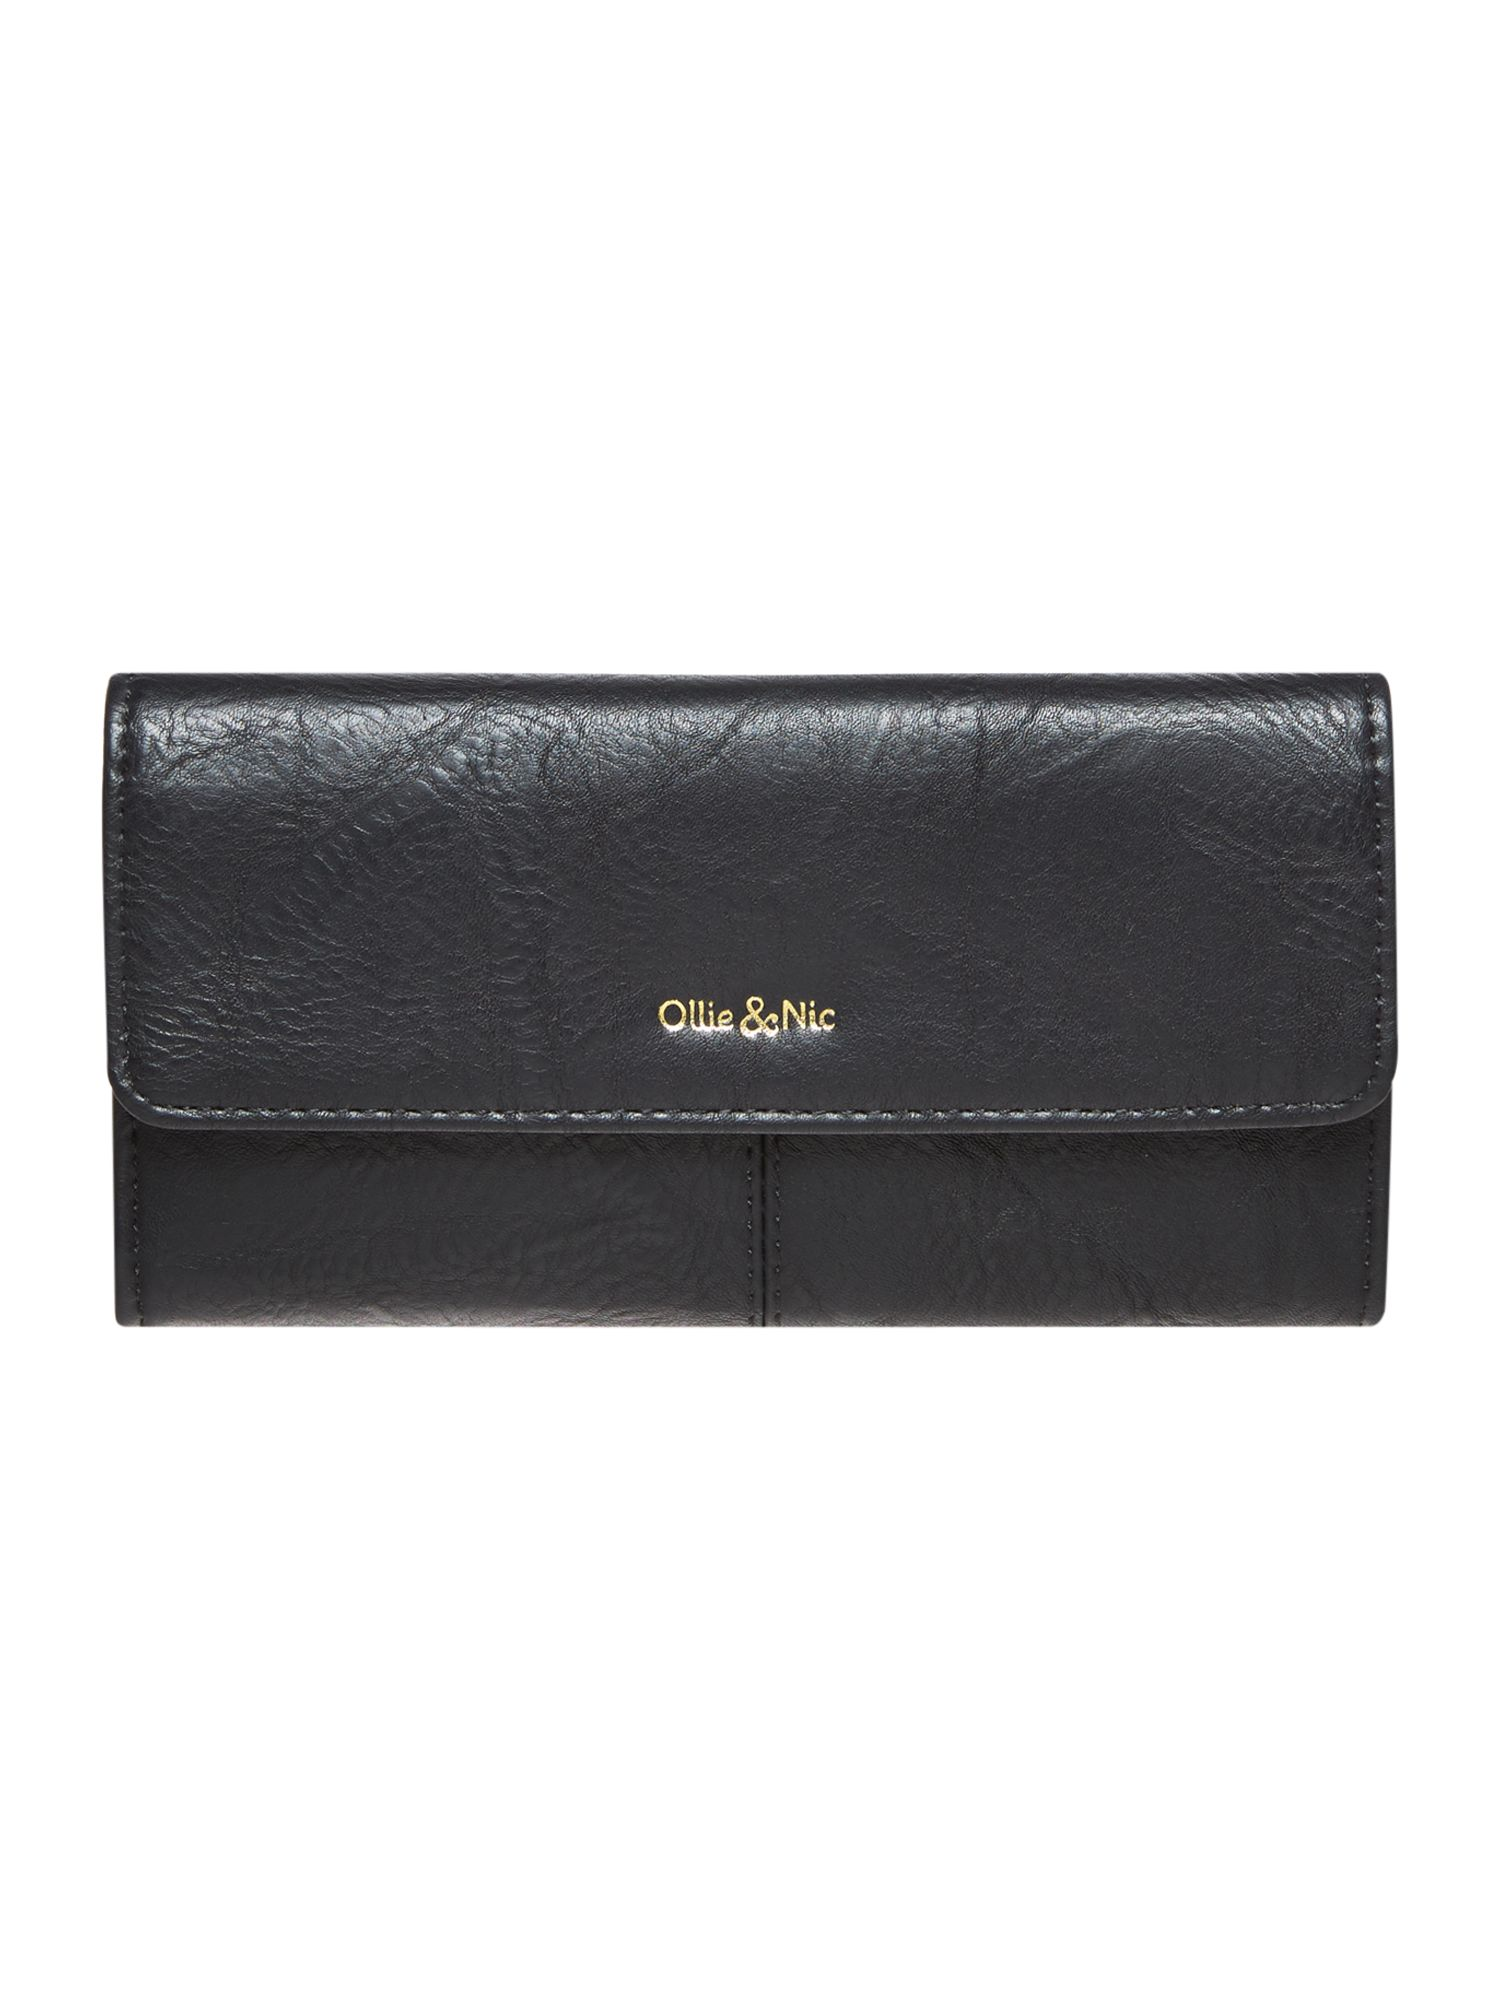 Ollie & Nic Margo flapover purse, Black